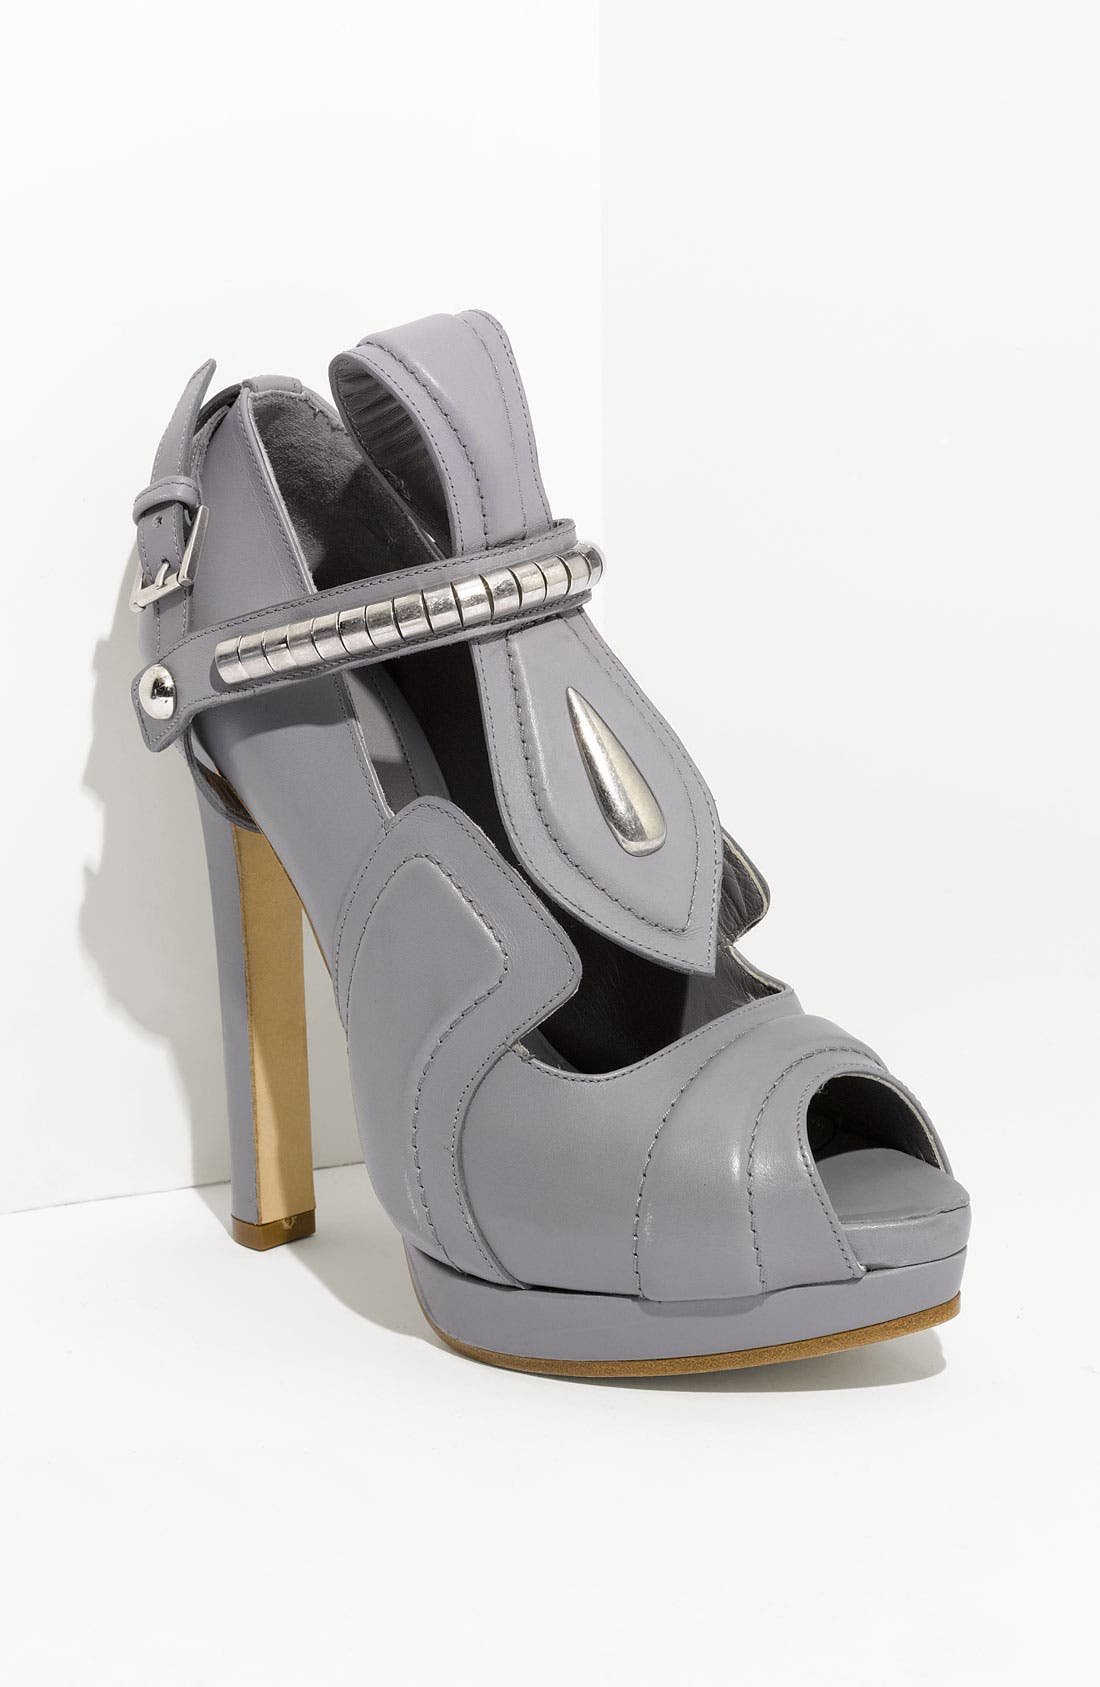 Alternate Image 1 Selected - Alexander McQueen Leather Pump